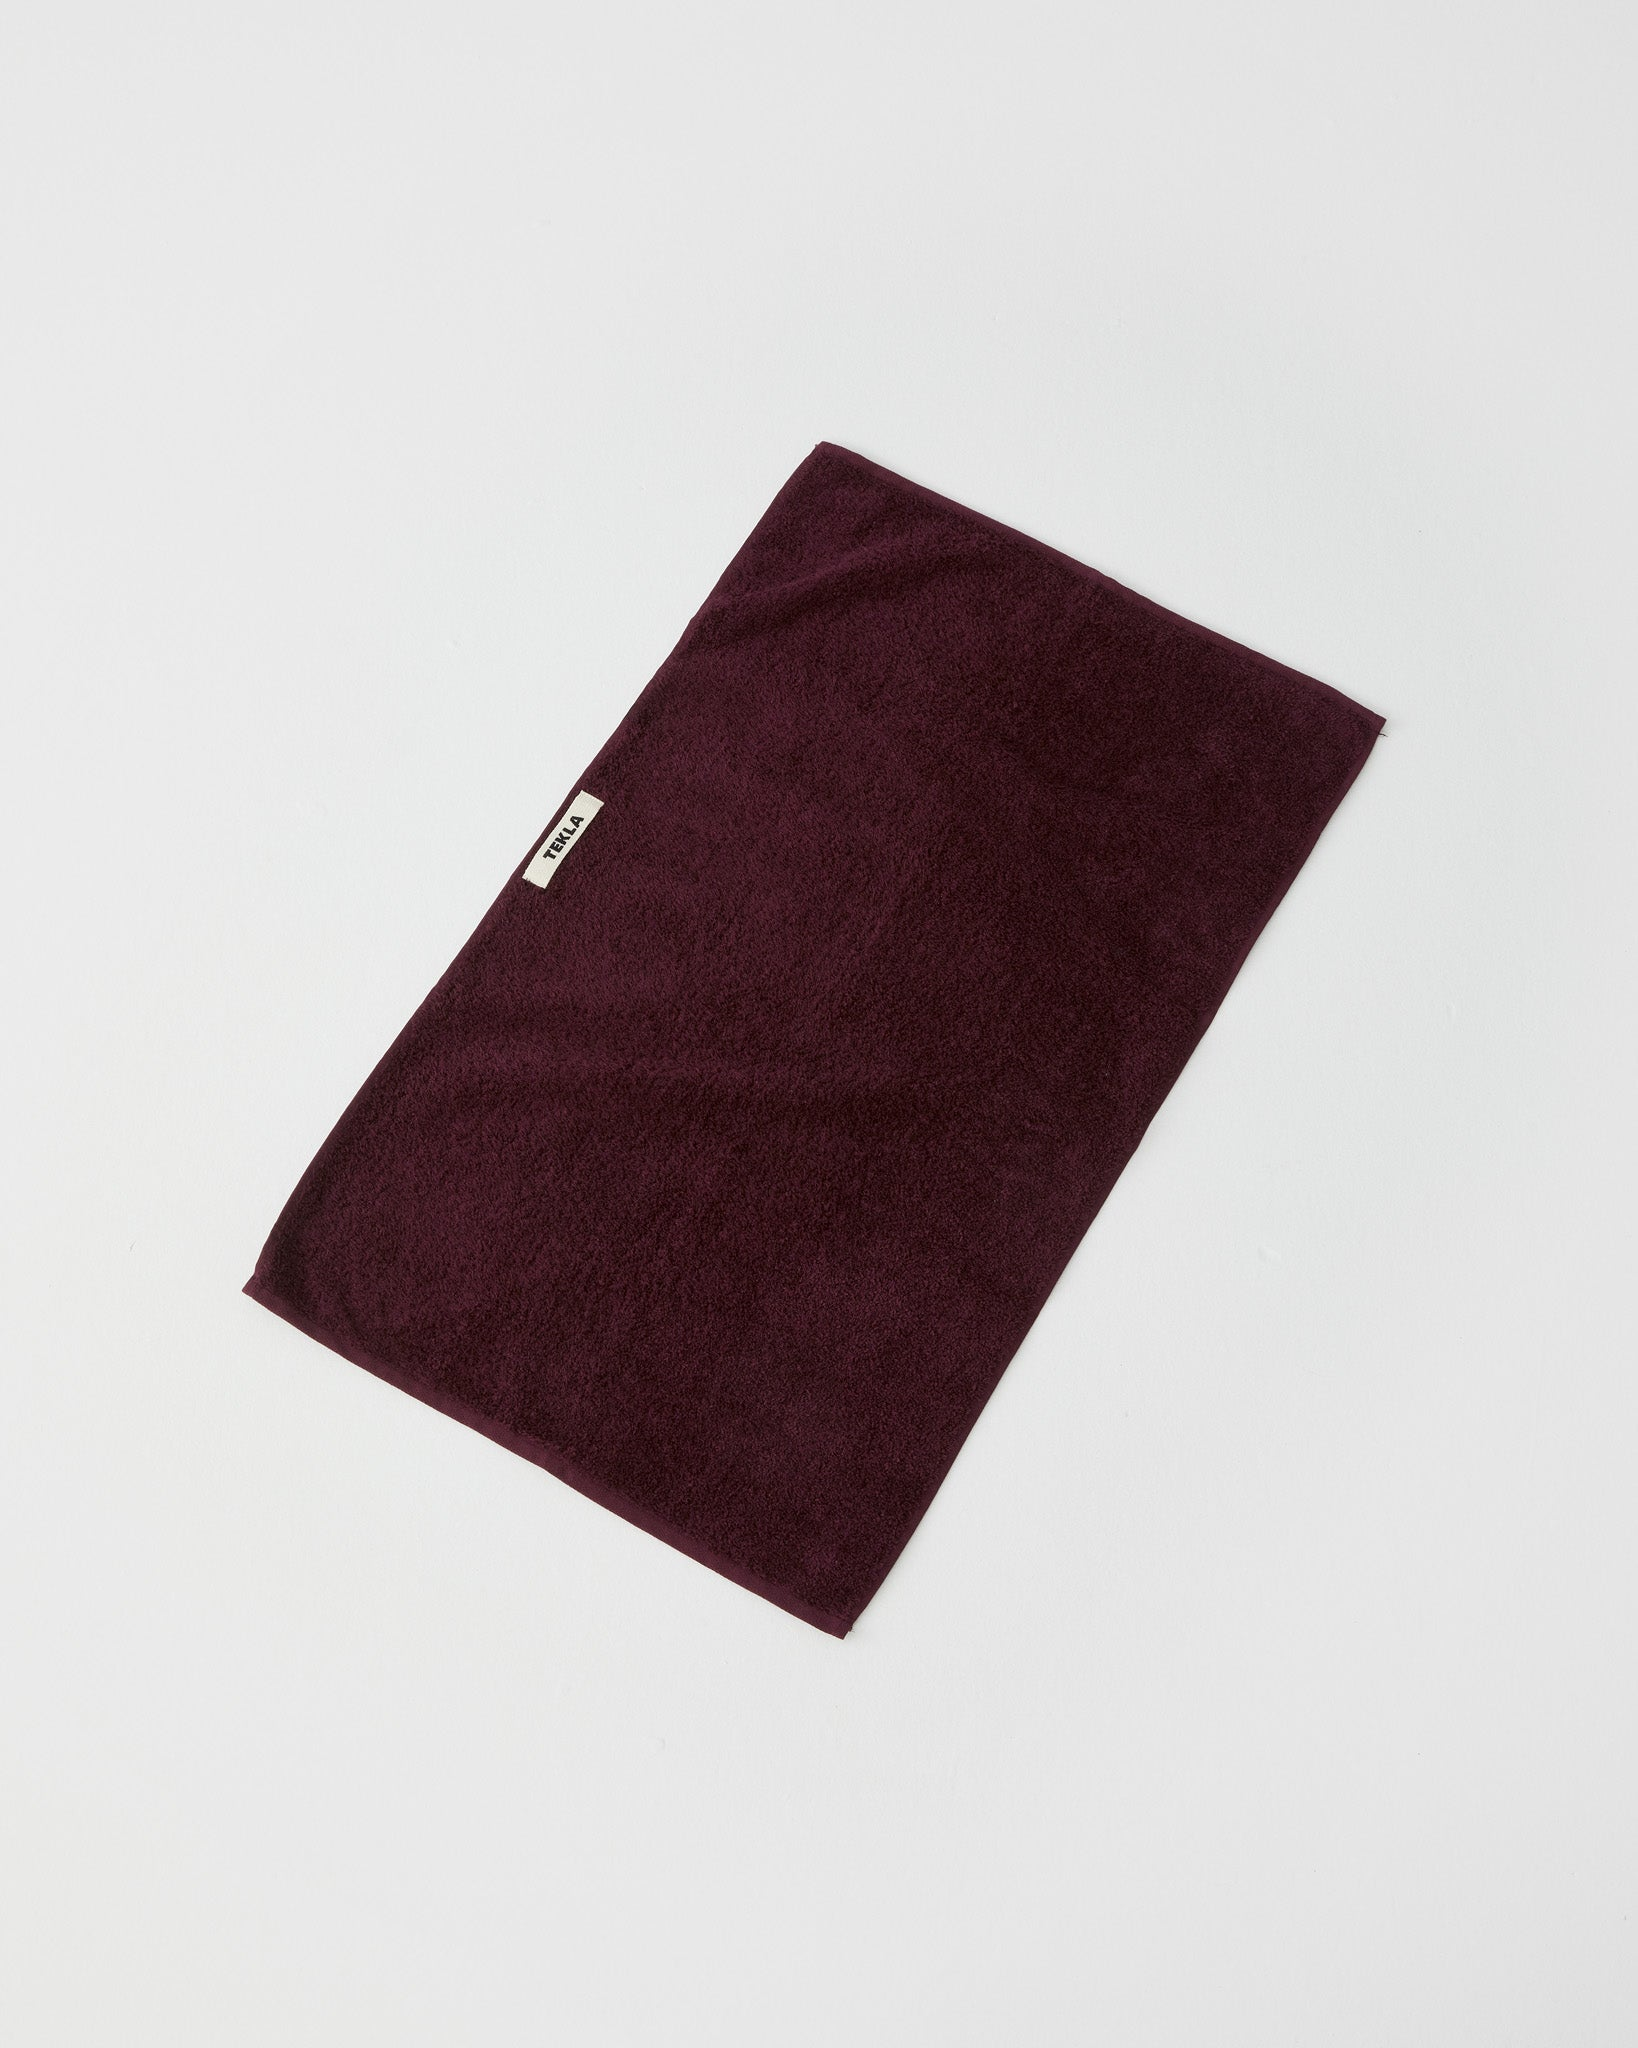 Bath Sheet, Plum Red fra Tekla Fabrics